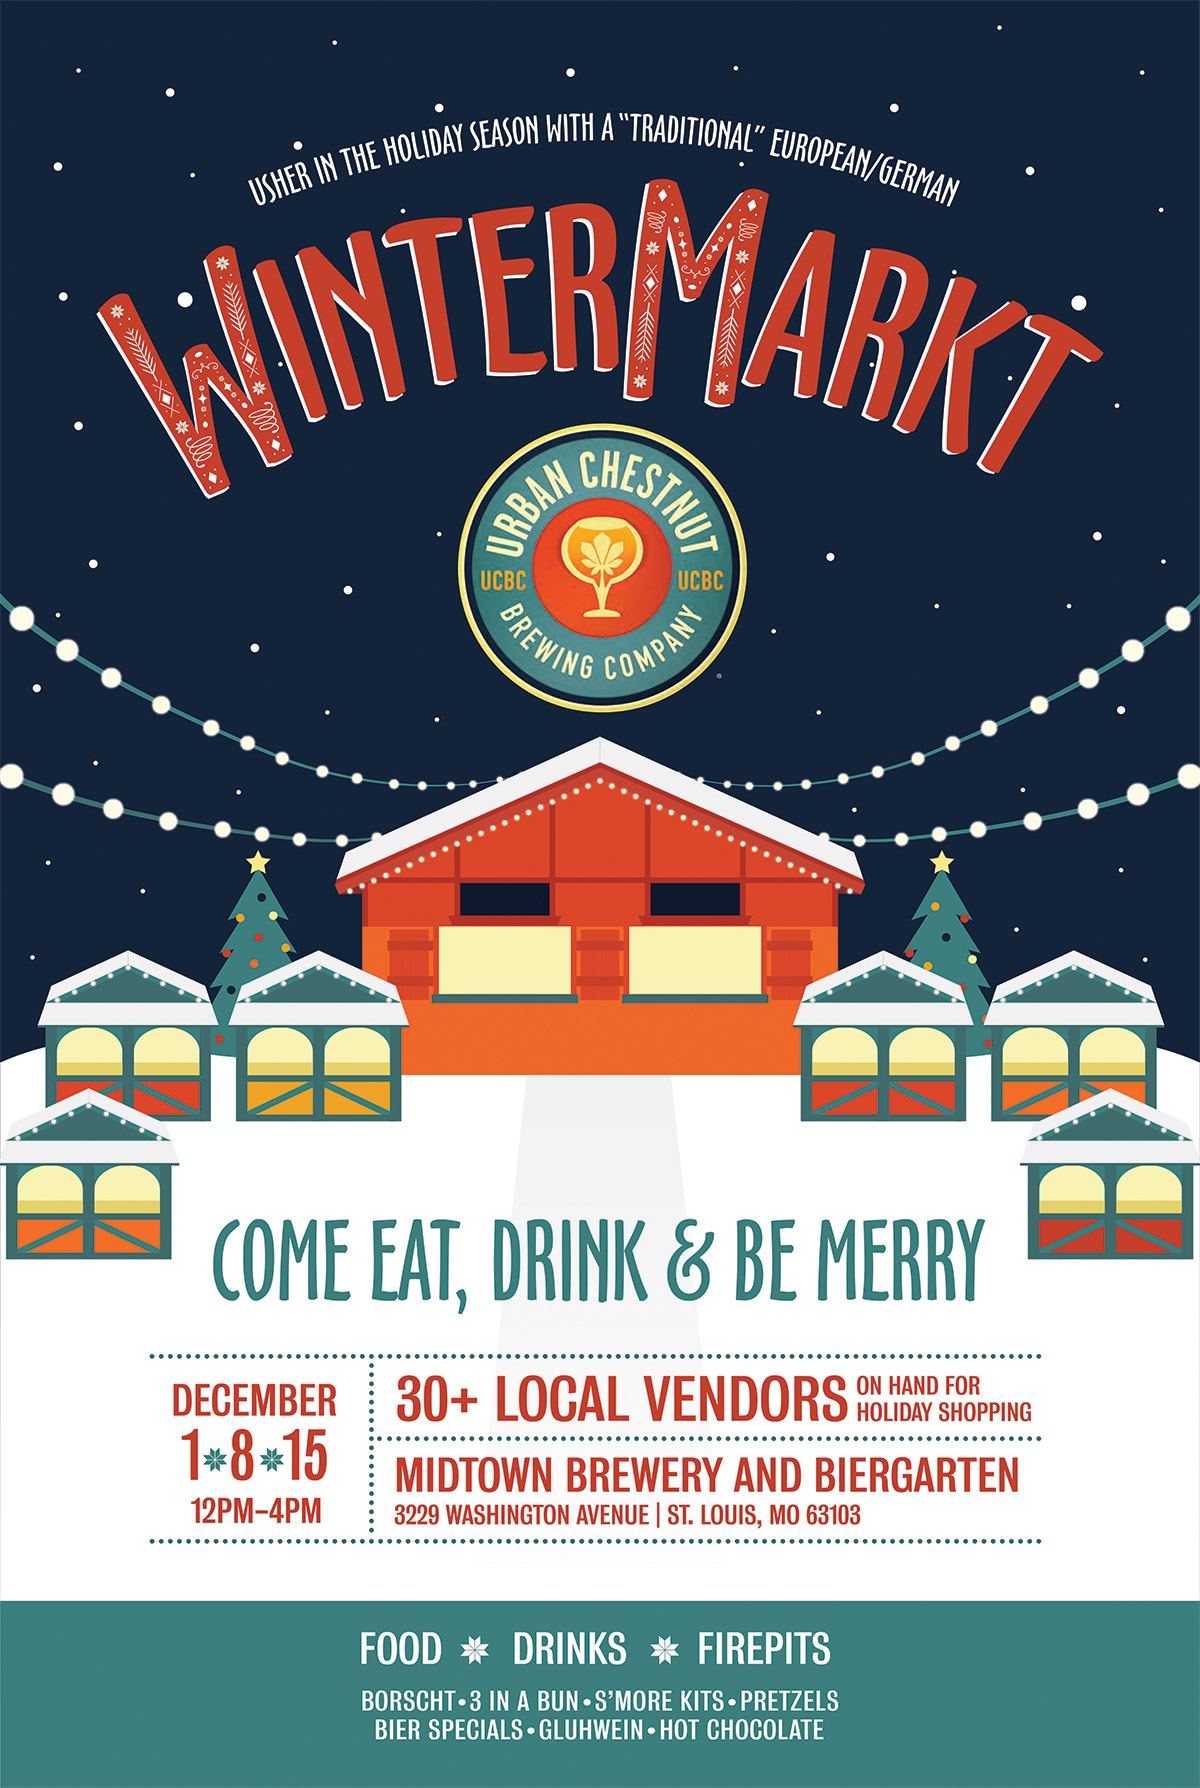 "Usher in the holiday season with a ""traditional"" European/German WinterMarkt at UCBC"